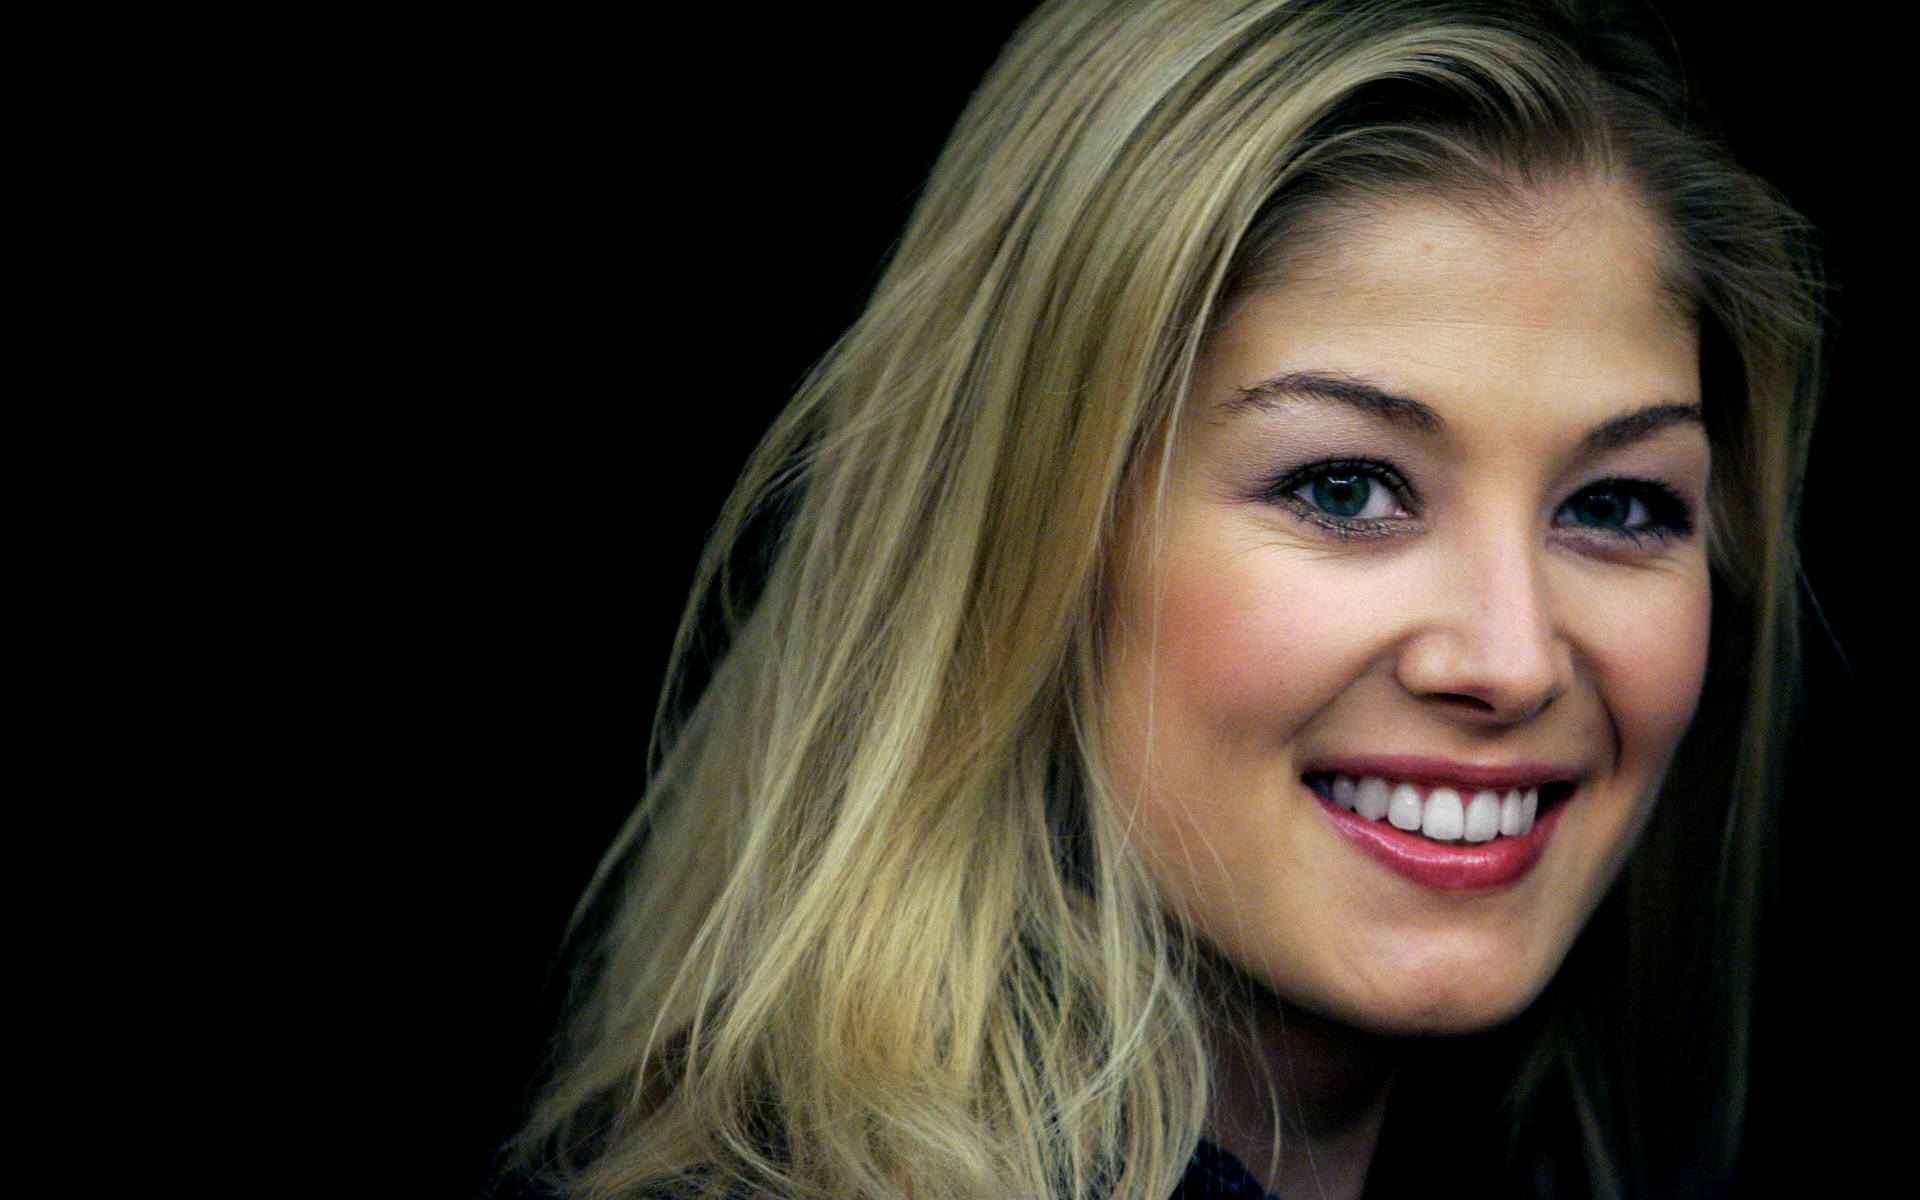 rosamund pike doomrosamund pike gif, rosamund pike tumblr, rosamund pike gone girl, rosamund pike young, rosamund pike фото, rosamund pike husband, rosamund pike 2014, rosamund pike 2017, rosamund pike кинопоиск, rosamund pike interview, rosamund pike doom, rosamund pike movies, rosamund pike wallpaper, rosamund pike jack reacher, rosamund pike wikipedia, rosamund pike oscar, rosamund pike twitter, rosamund pike 2013, rosamund pike short hair, rosamund pike site